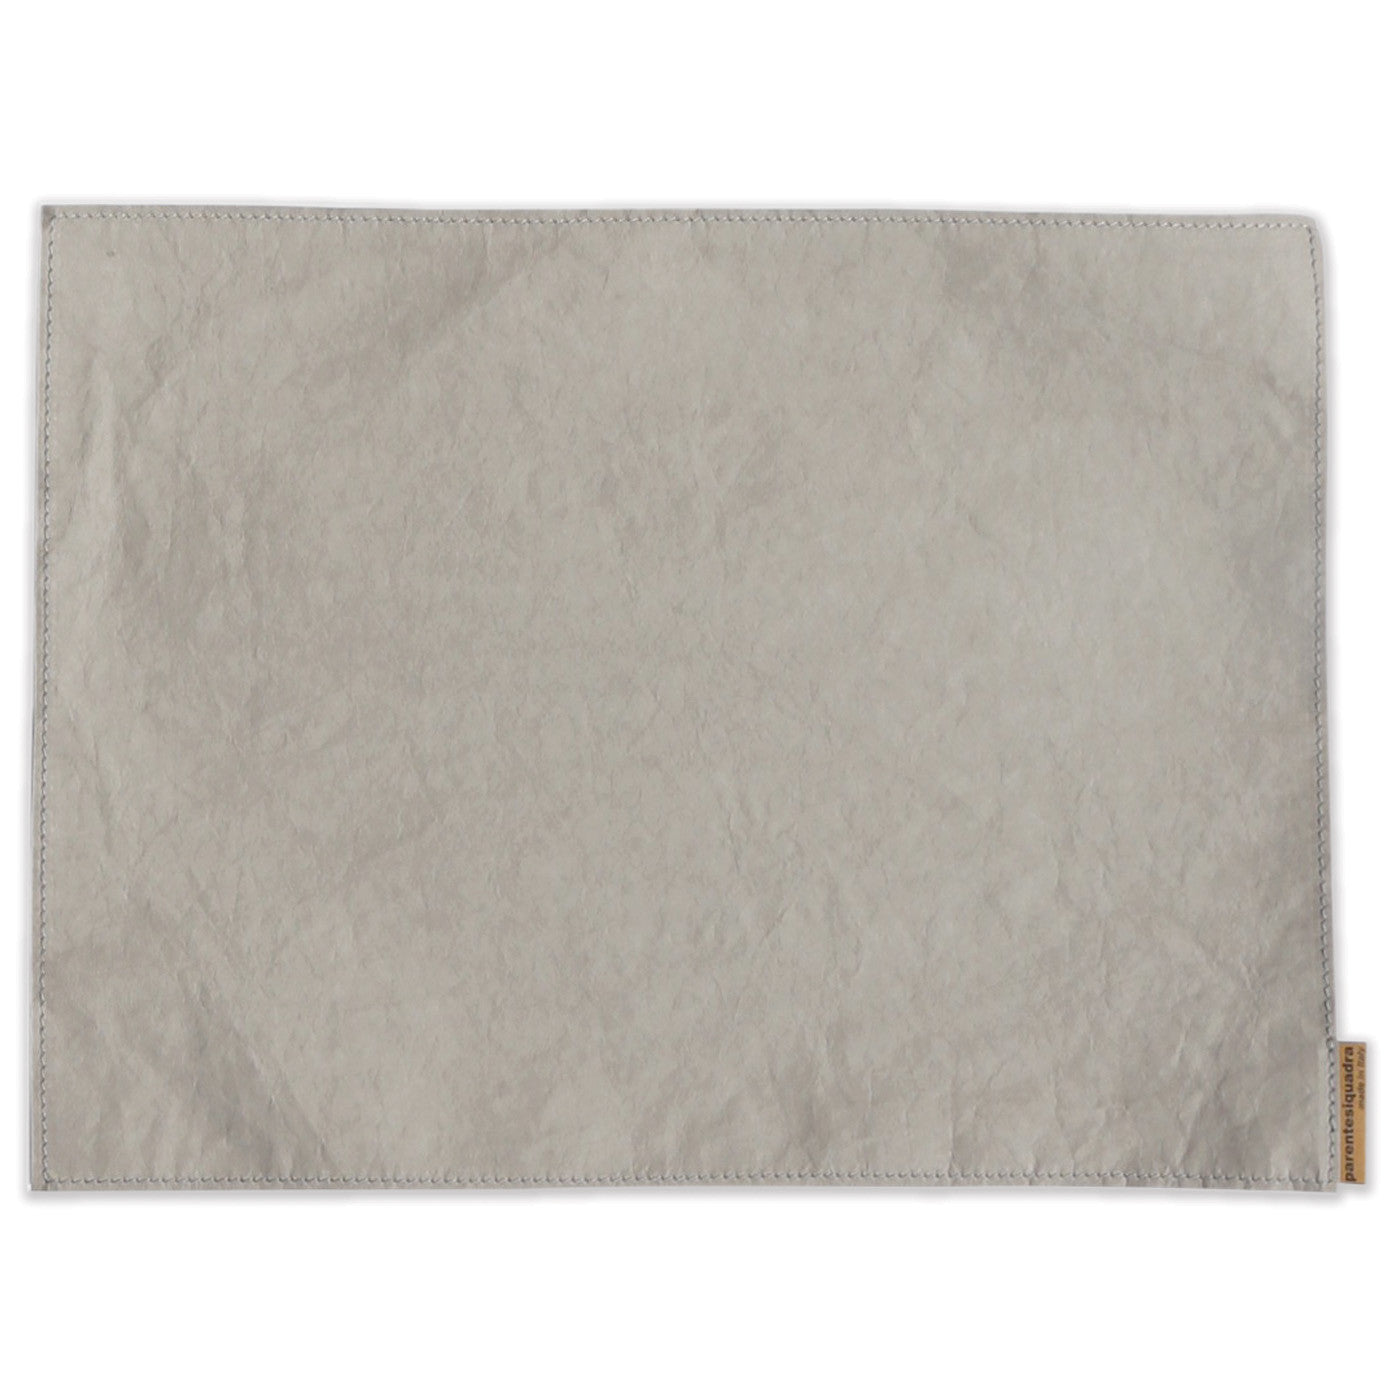 Gray Paper Placemats (Set of 4)